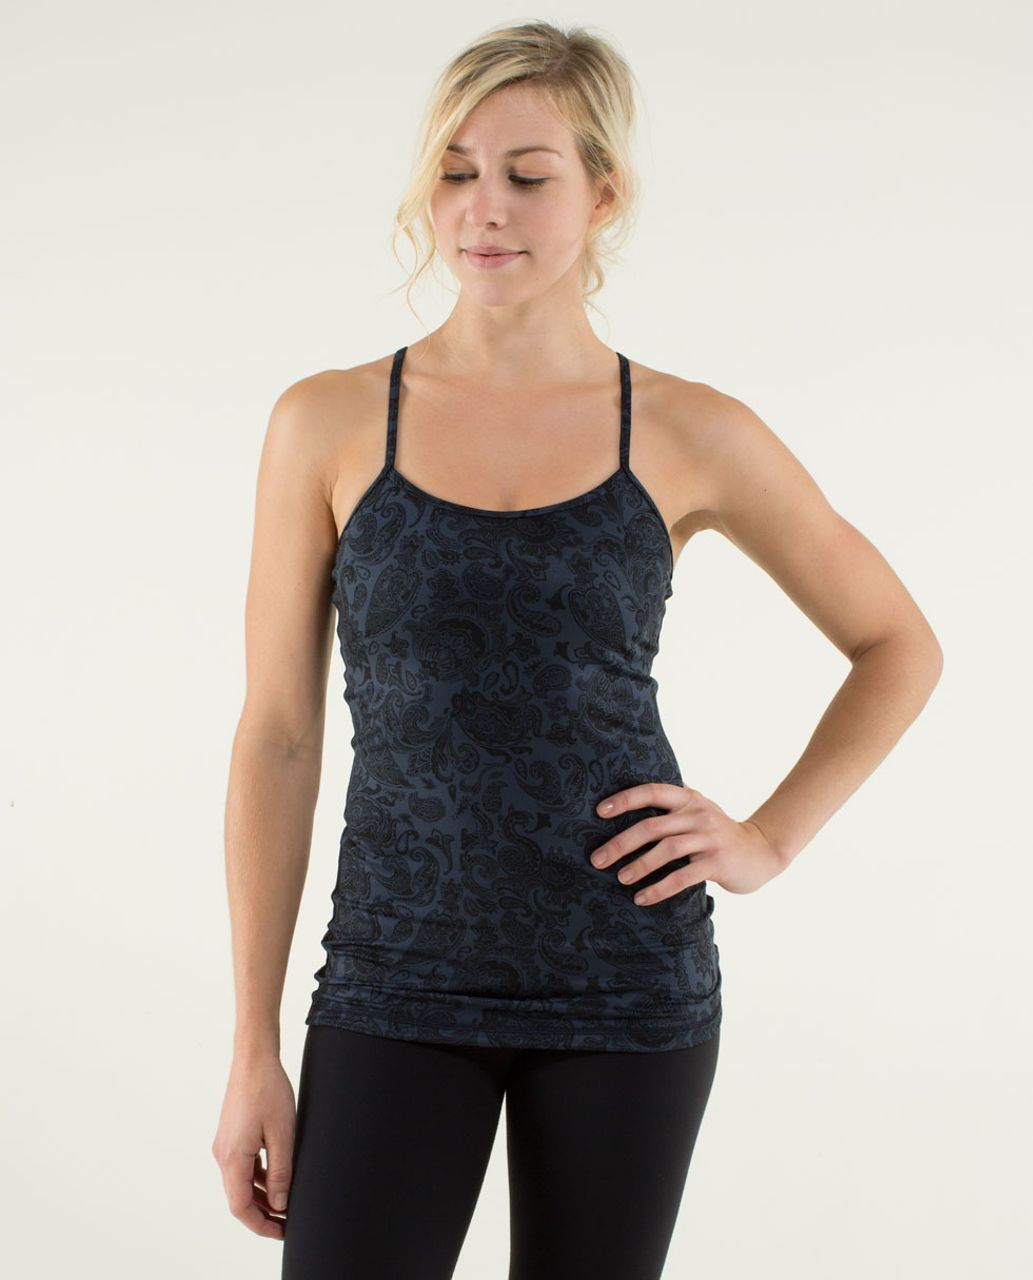 Lululemon Power Y Tank *Luon Light - Paisley Inkwell / Black